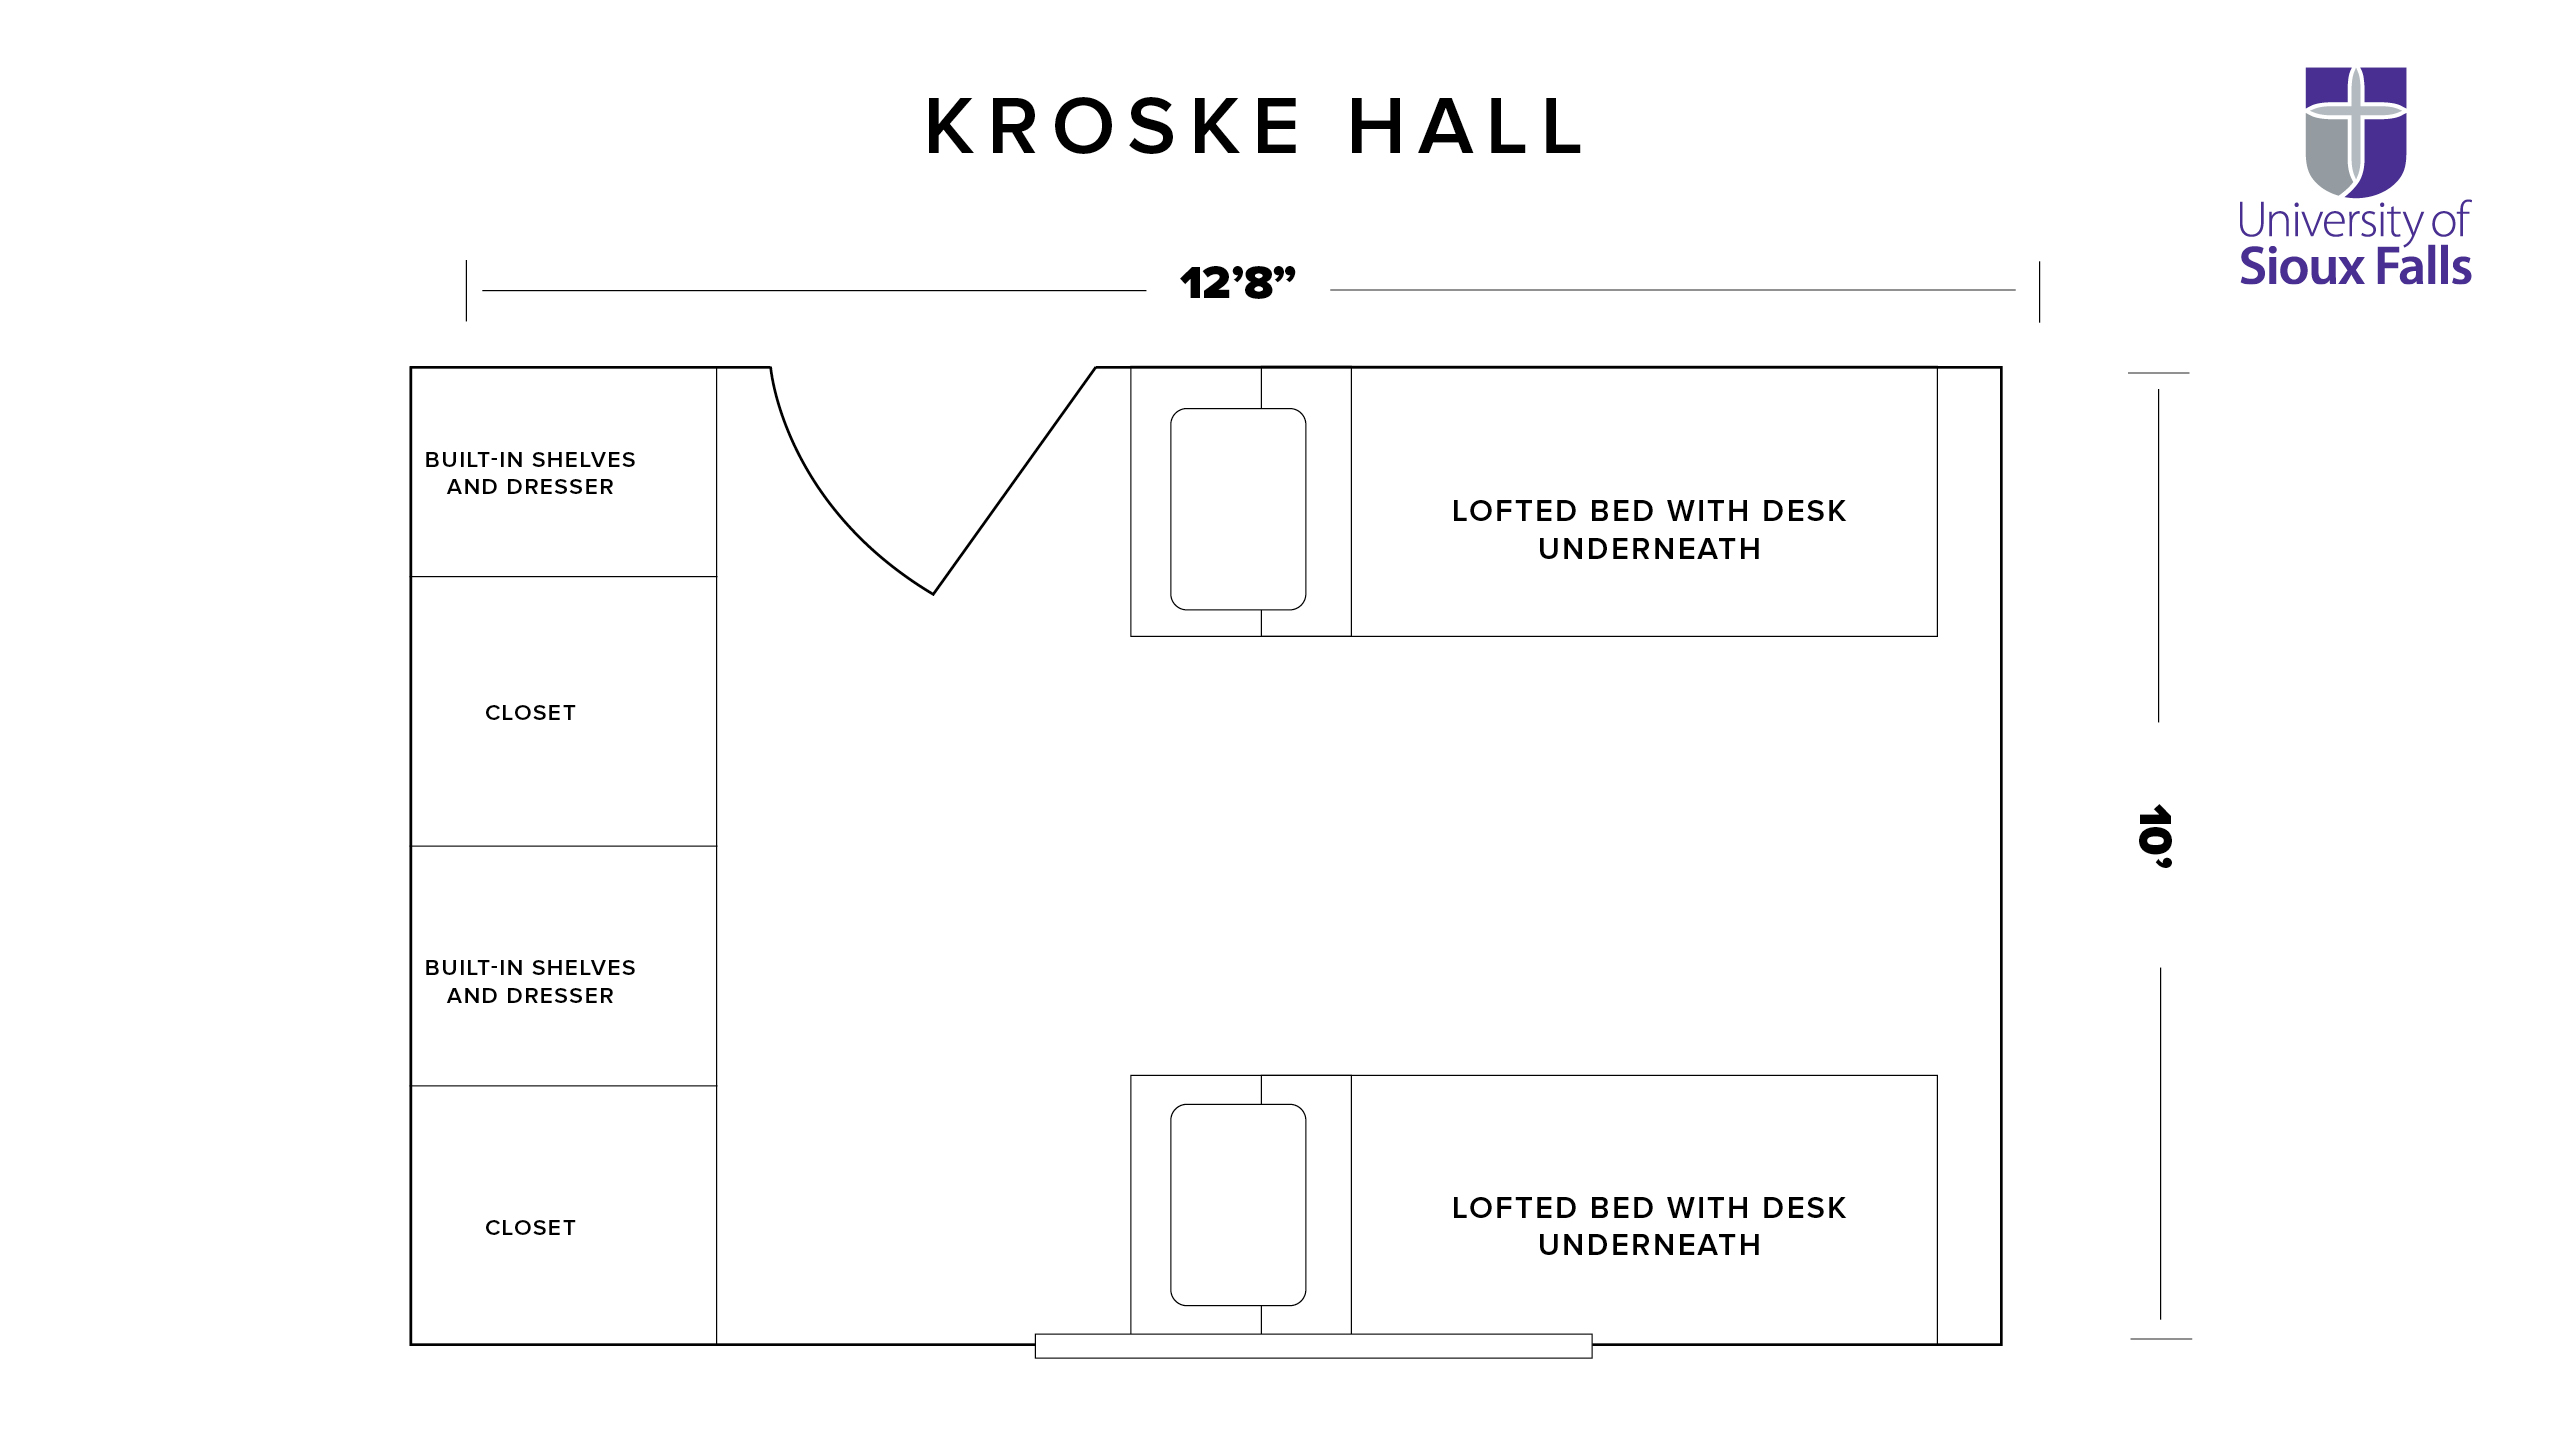 Kroske Hall Room Layout